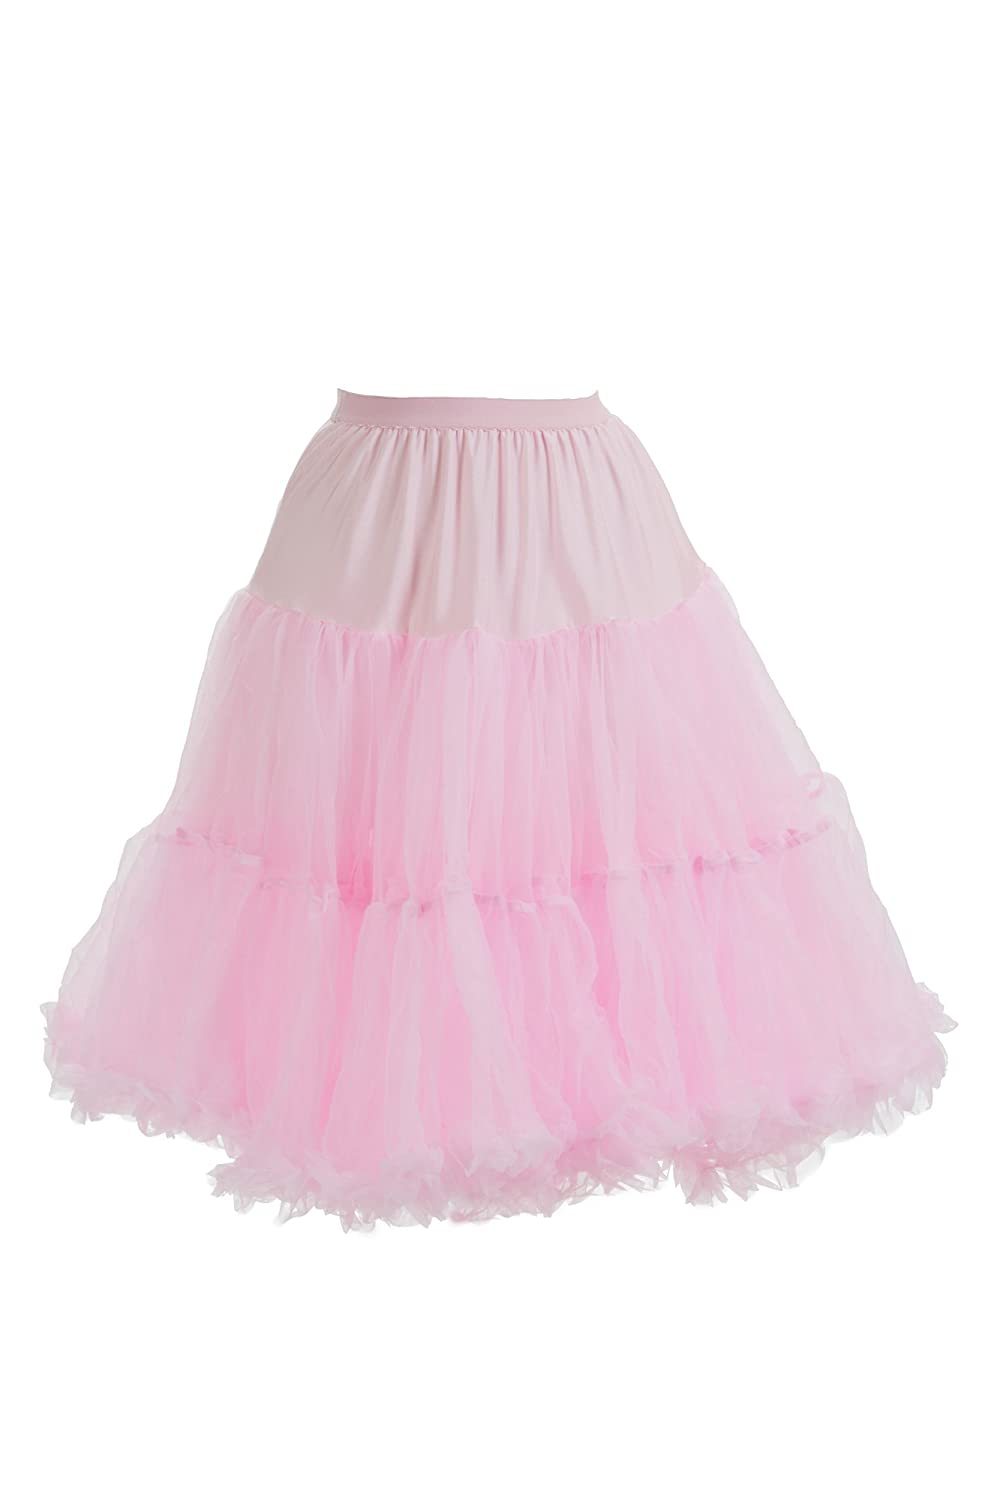 1950s Crinoline, Petticoats & Pettipants Crinoline By Tatyana - Red and Pink Petticoats $50.00 AT vintagedancer.com